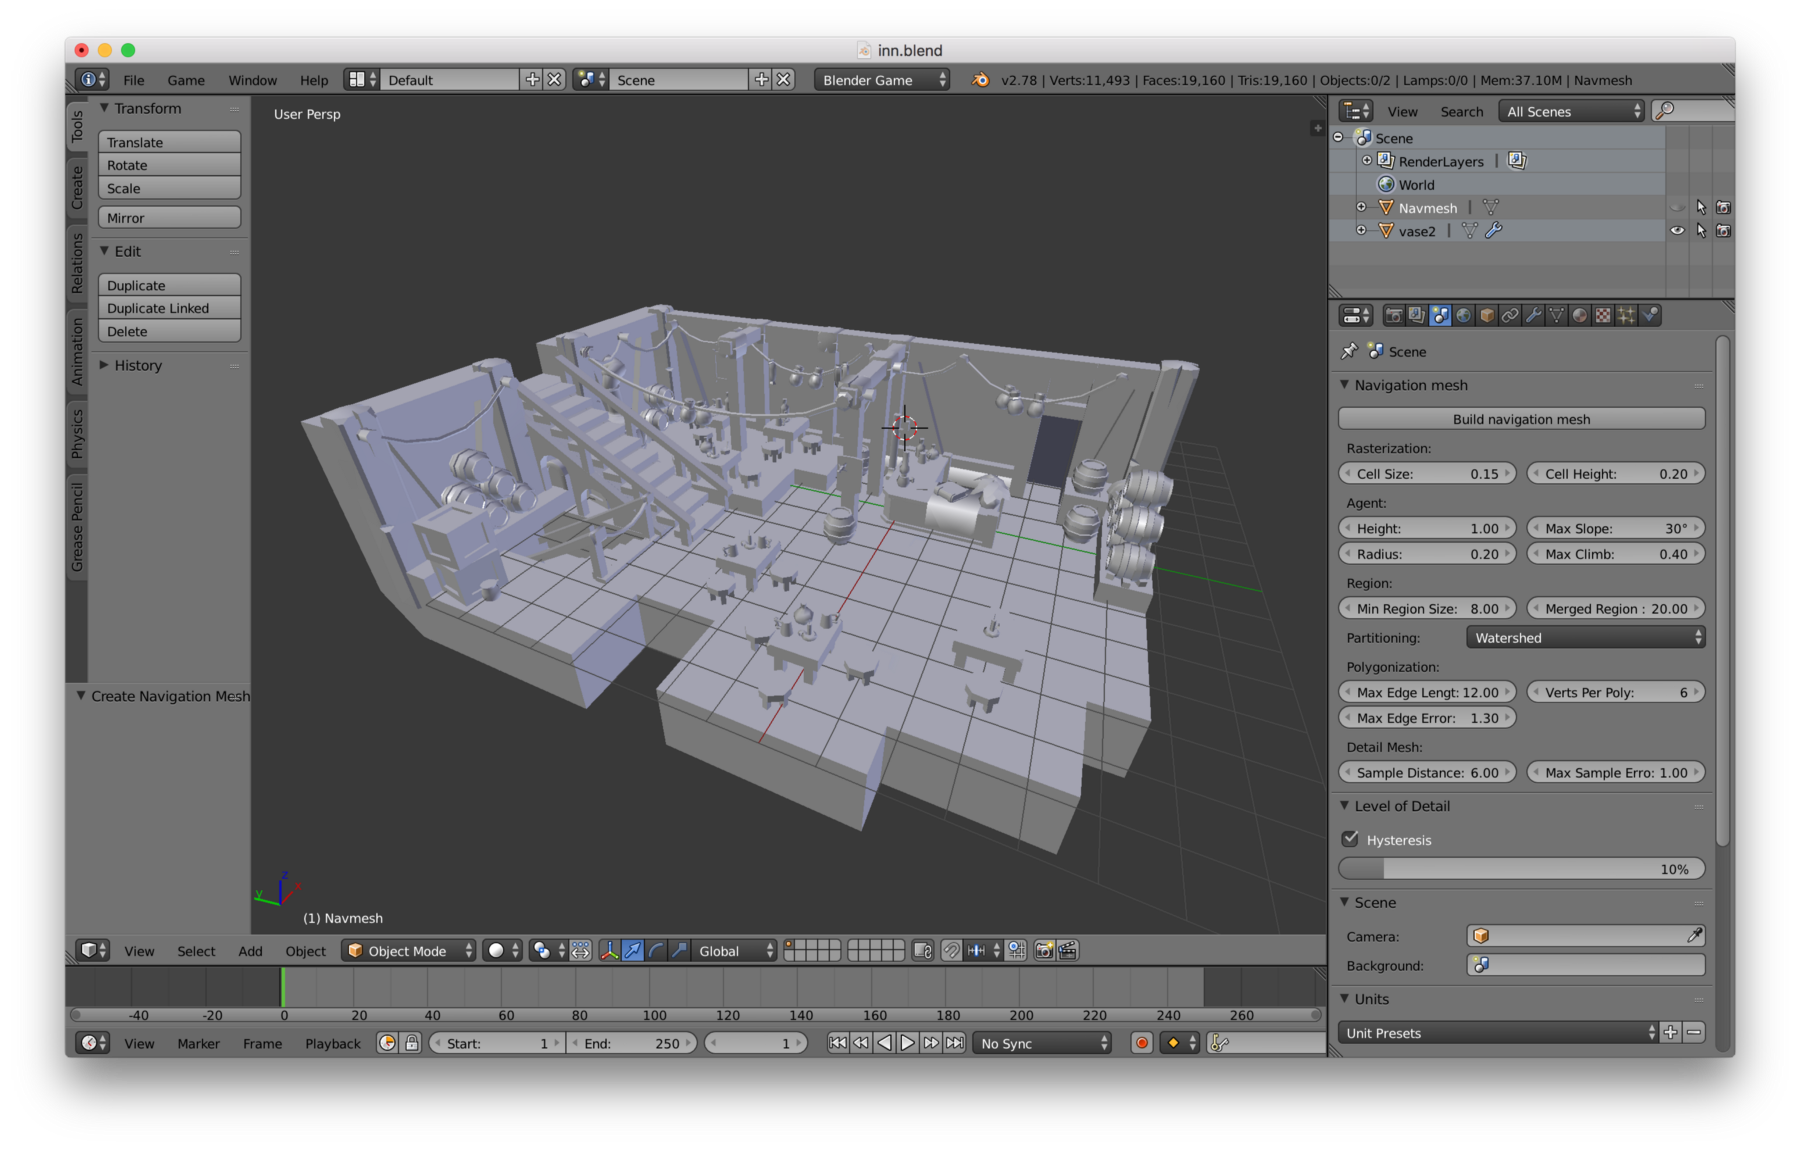 Screenshot of our bare scene inside of the Blender user interface.